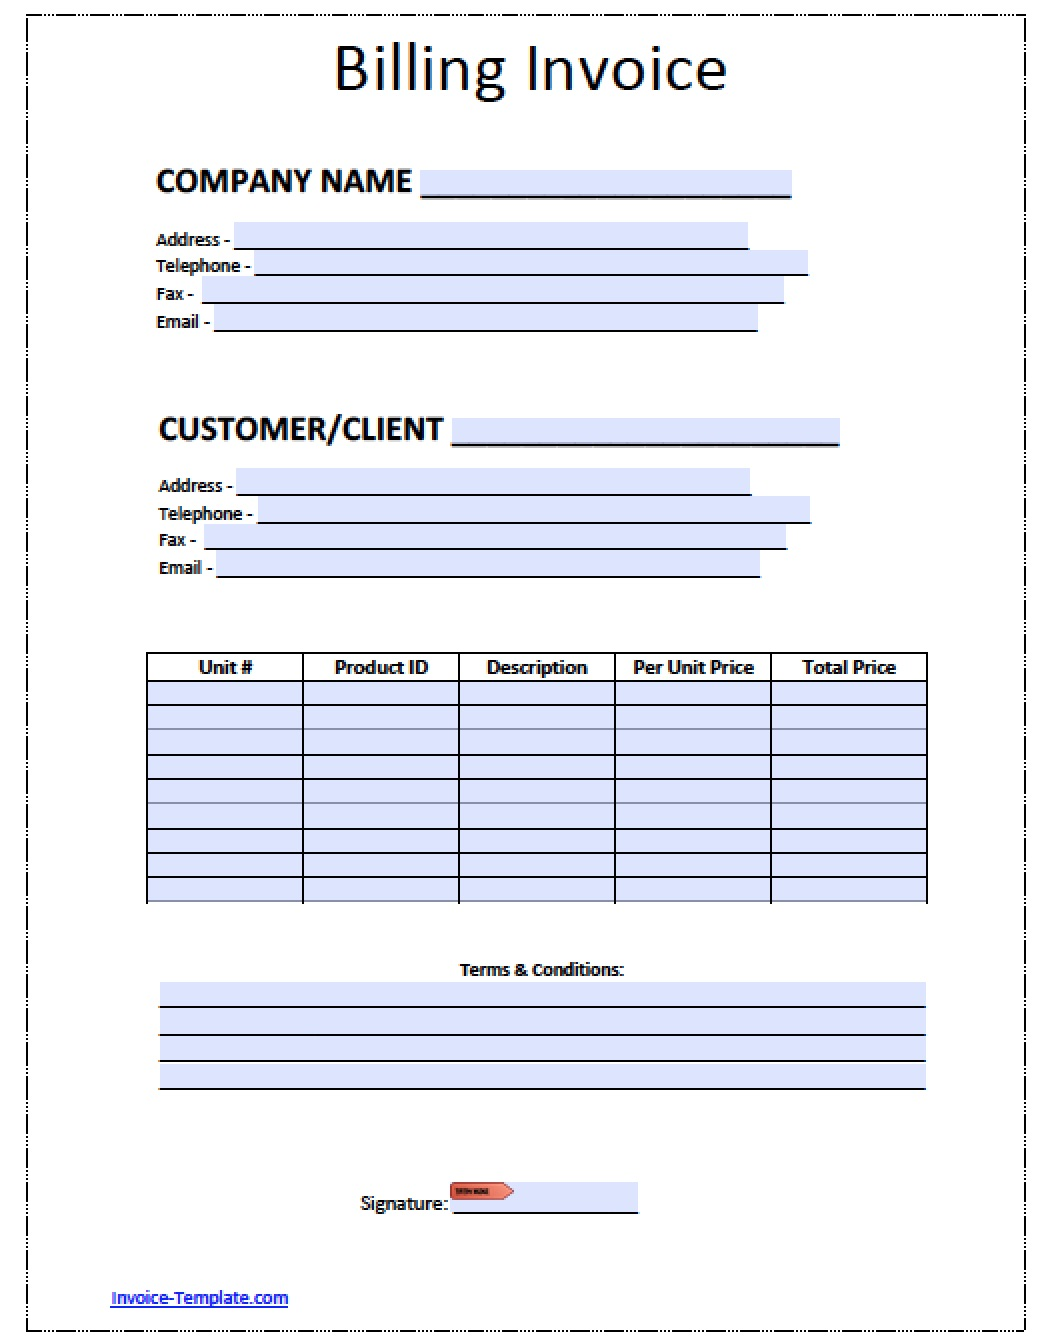 Elegant Generic Billing And Plain Invoice Template